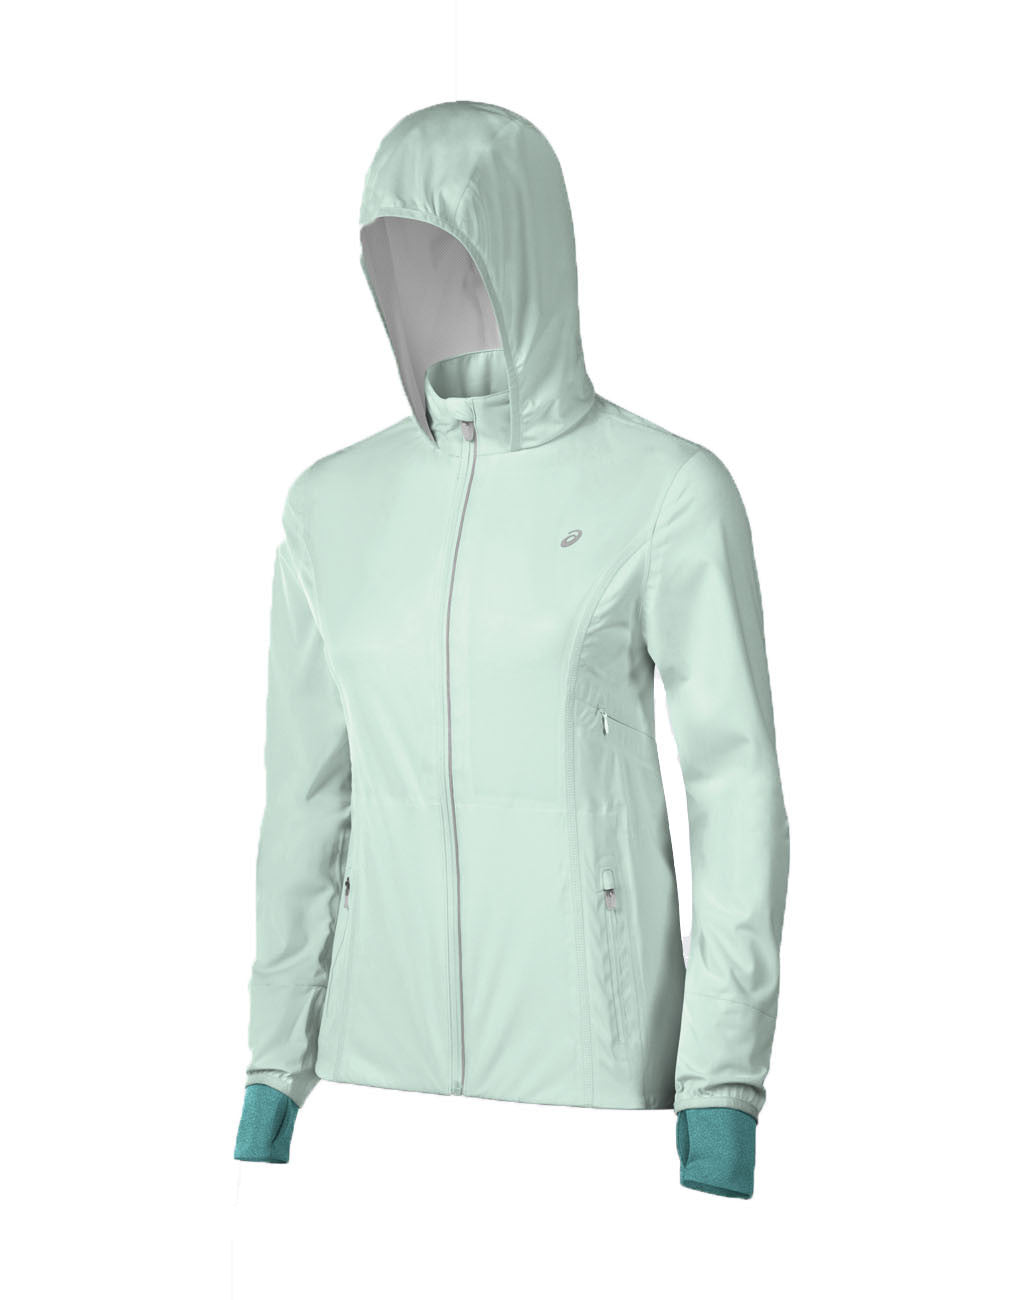 ASICS Accelerate Jacket (Women's)